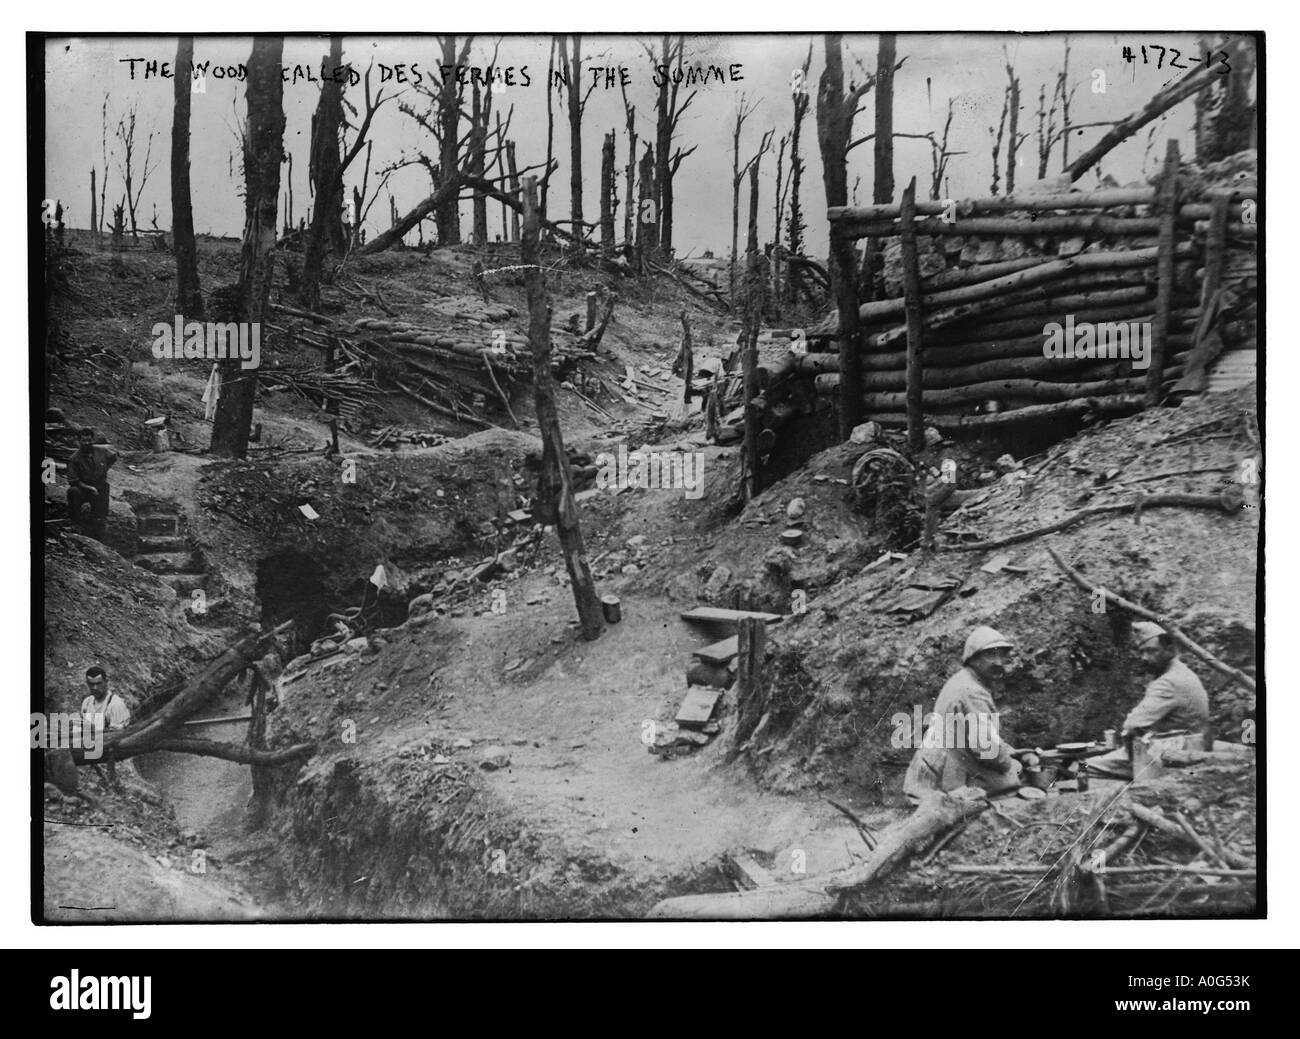 The Wood called Des Fermes in the Somme France Soldiers in World War I trench with trees decimated from battle - Stock Image